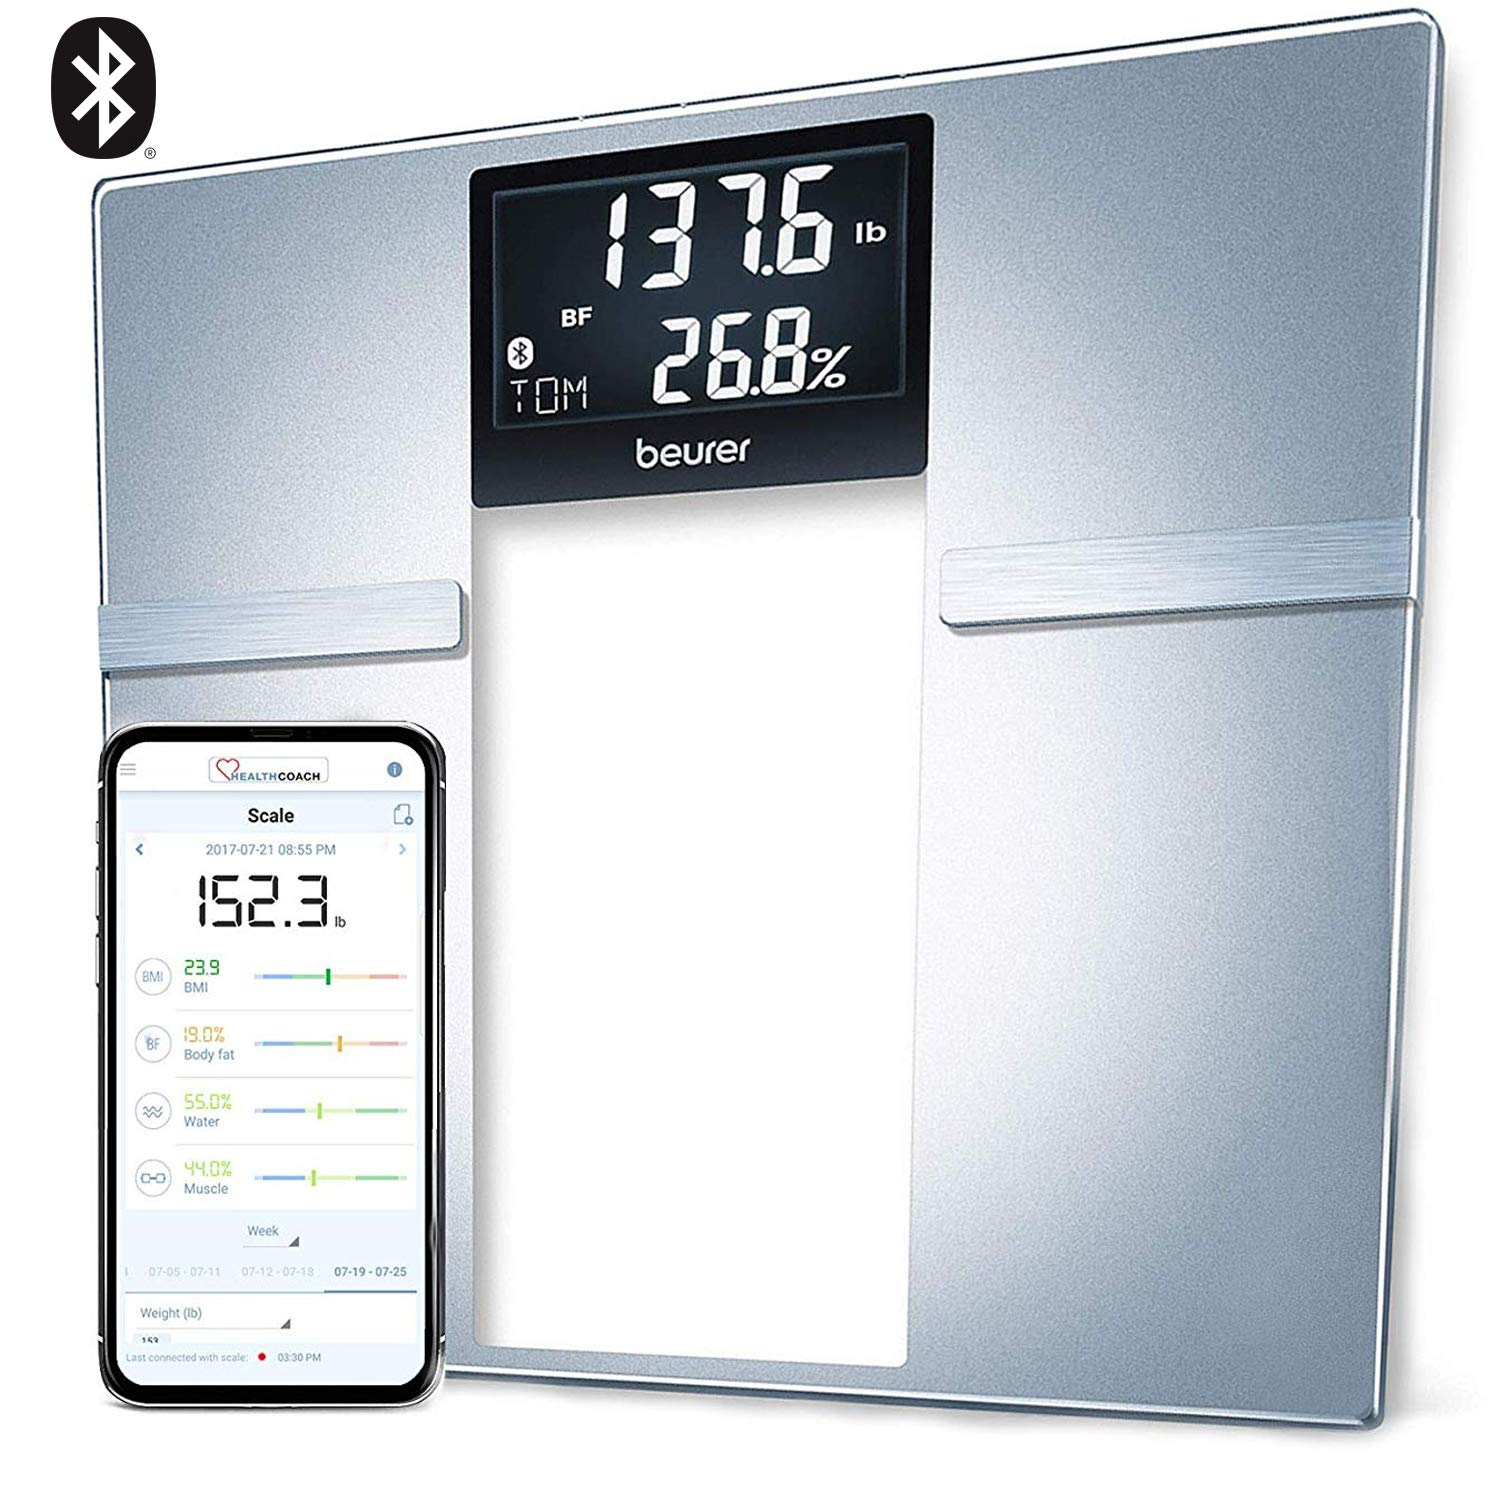 Beurer Bluetooth Body Fat Scale Smart BMI, User Recognition Digital Bathroom Wireless Weight Scale, Syncs to App, BF70 by Beurer